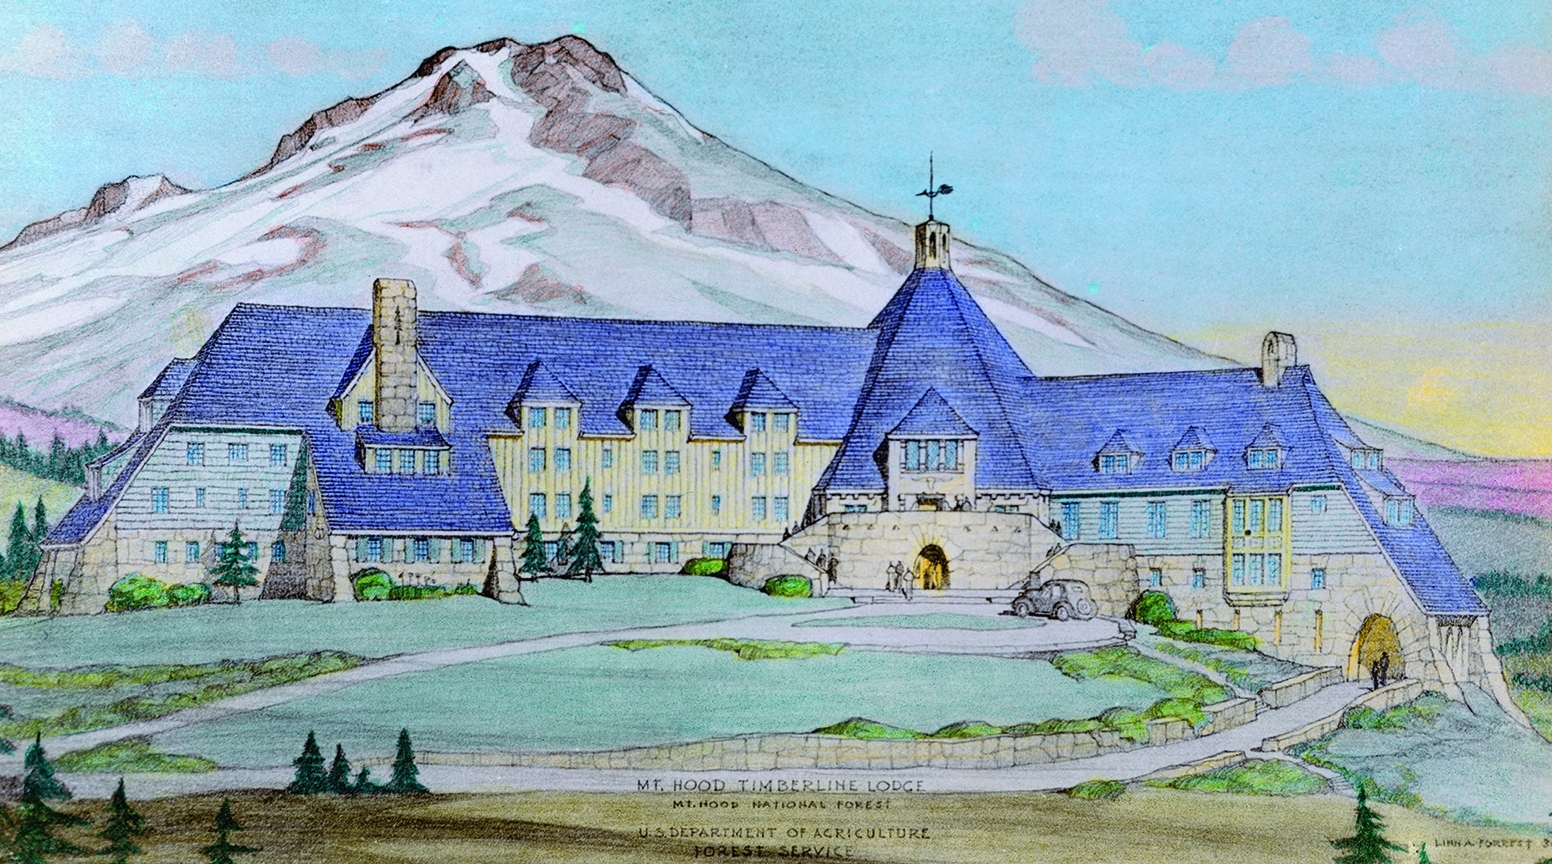 Courtesy TimberlineLodge.com